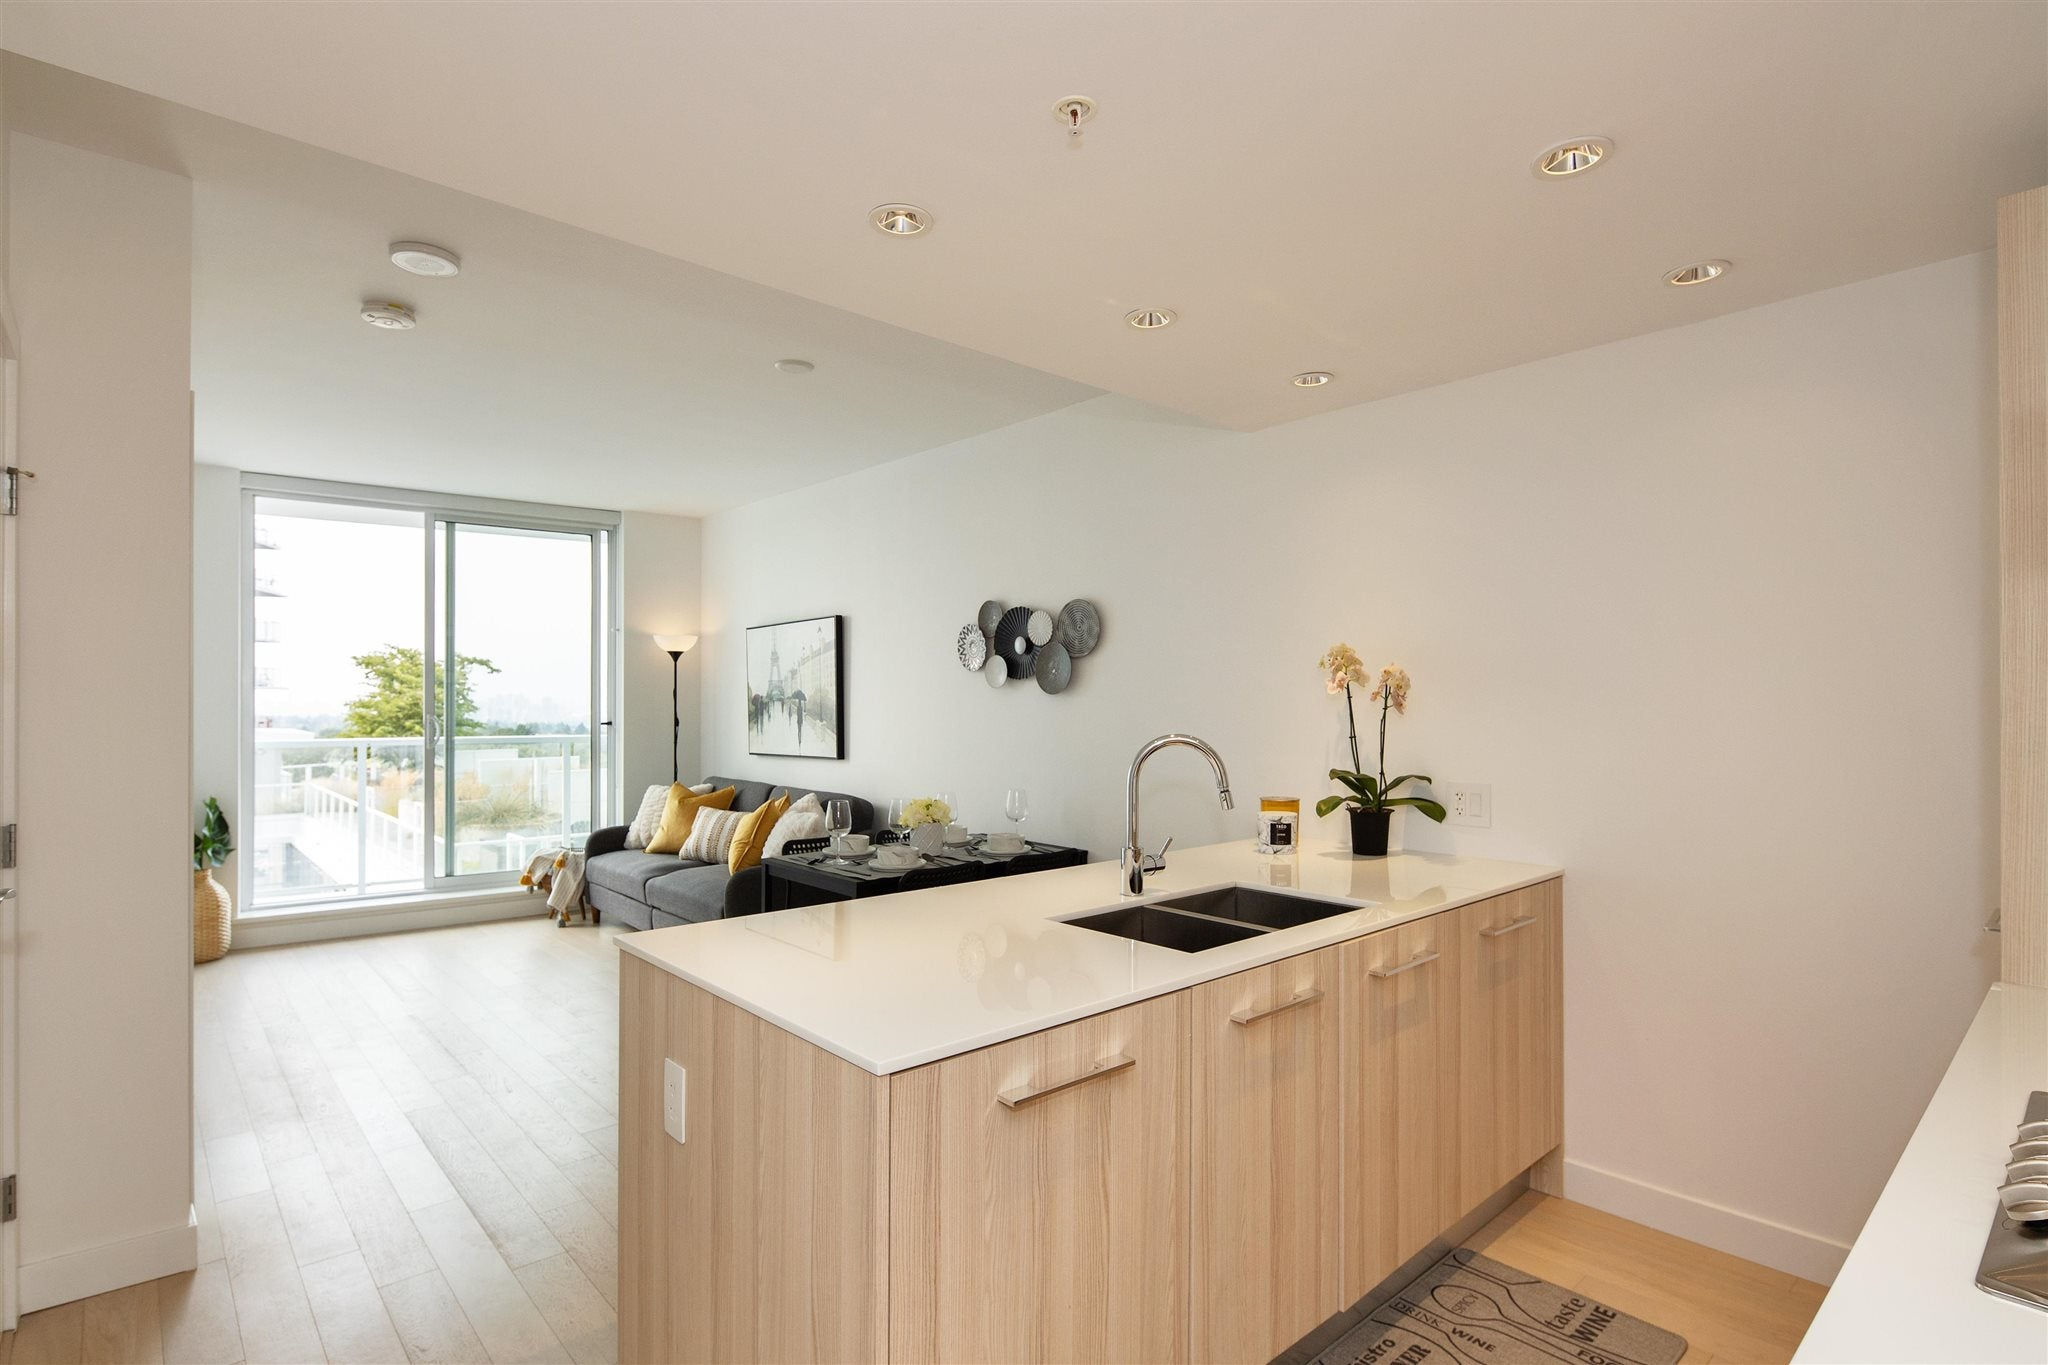 901 2220 KINGSWAY - Victoria VE Apartment/Condo for sale, 1 Bedroom (R2607170)